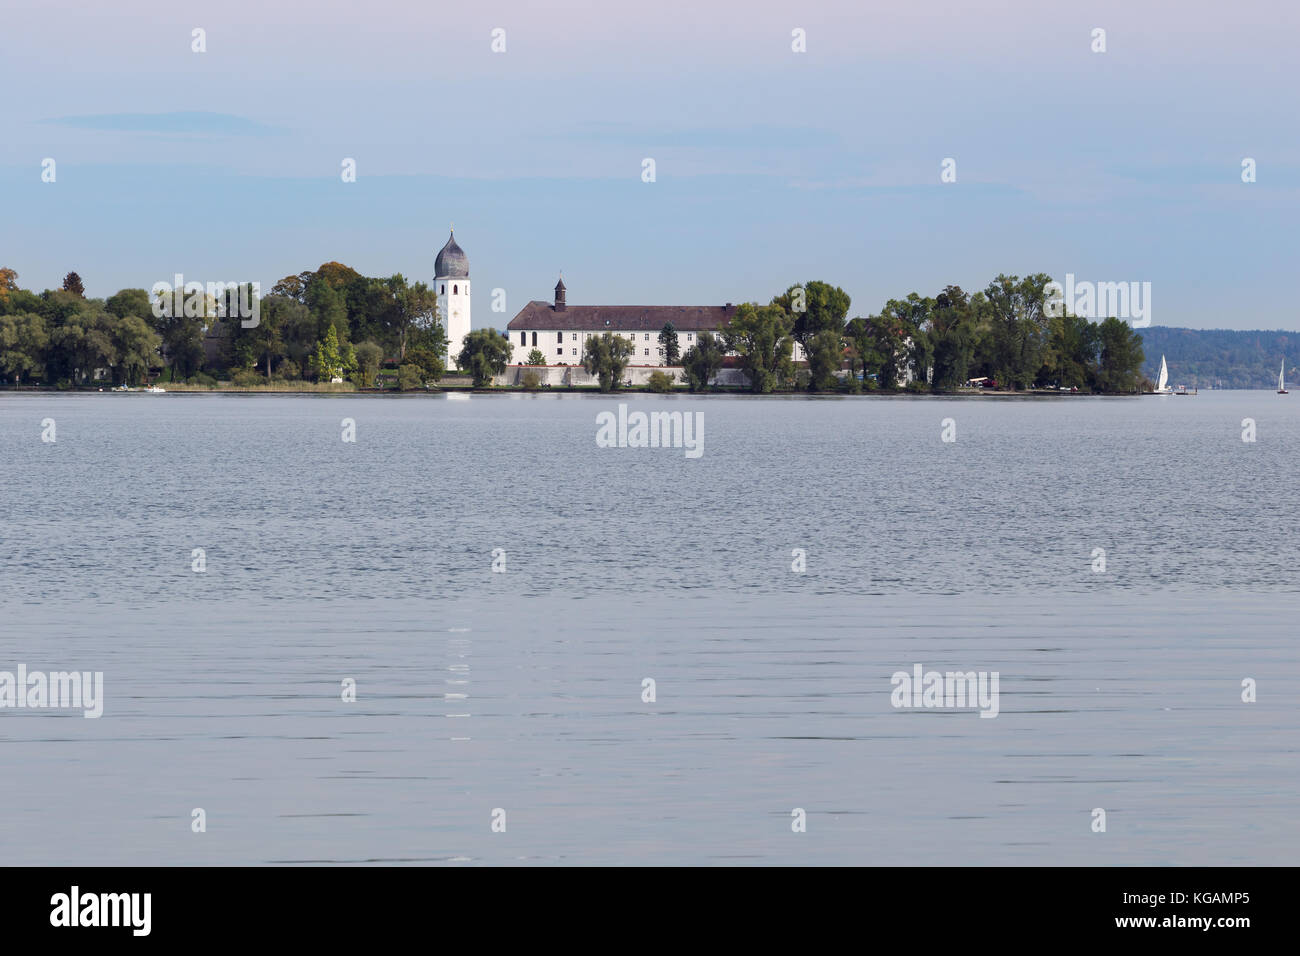 View of Frauenchiemsee island seen from Herreninsel island Stock Photo